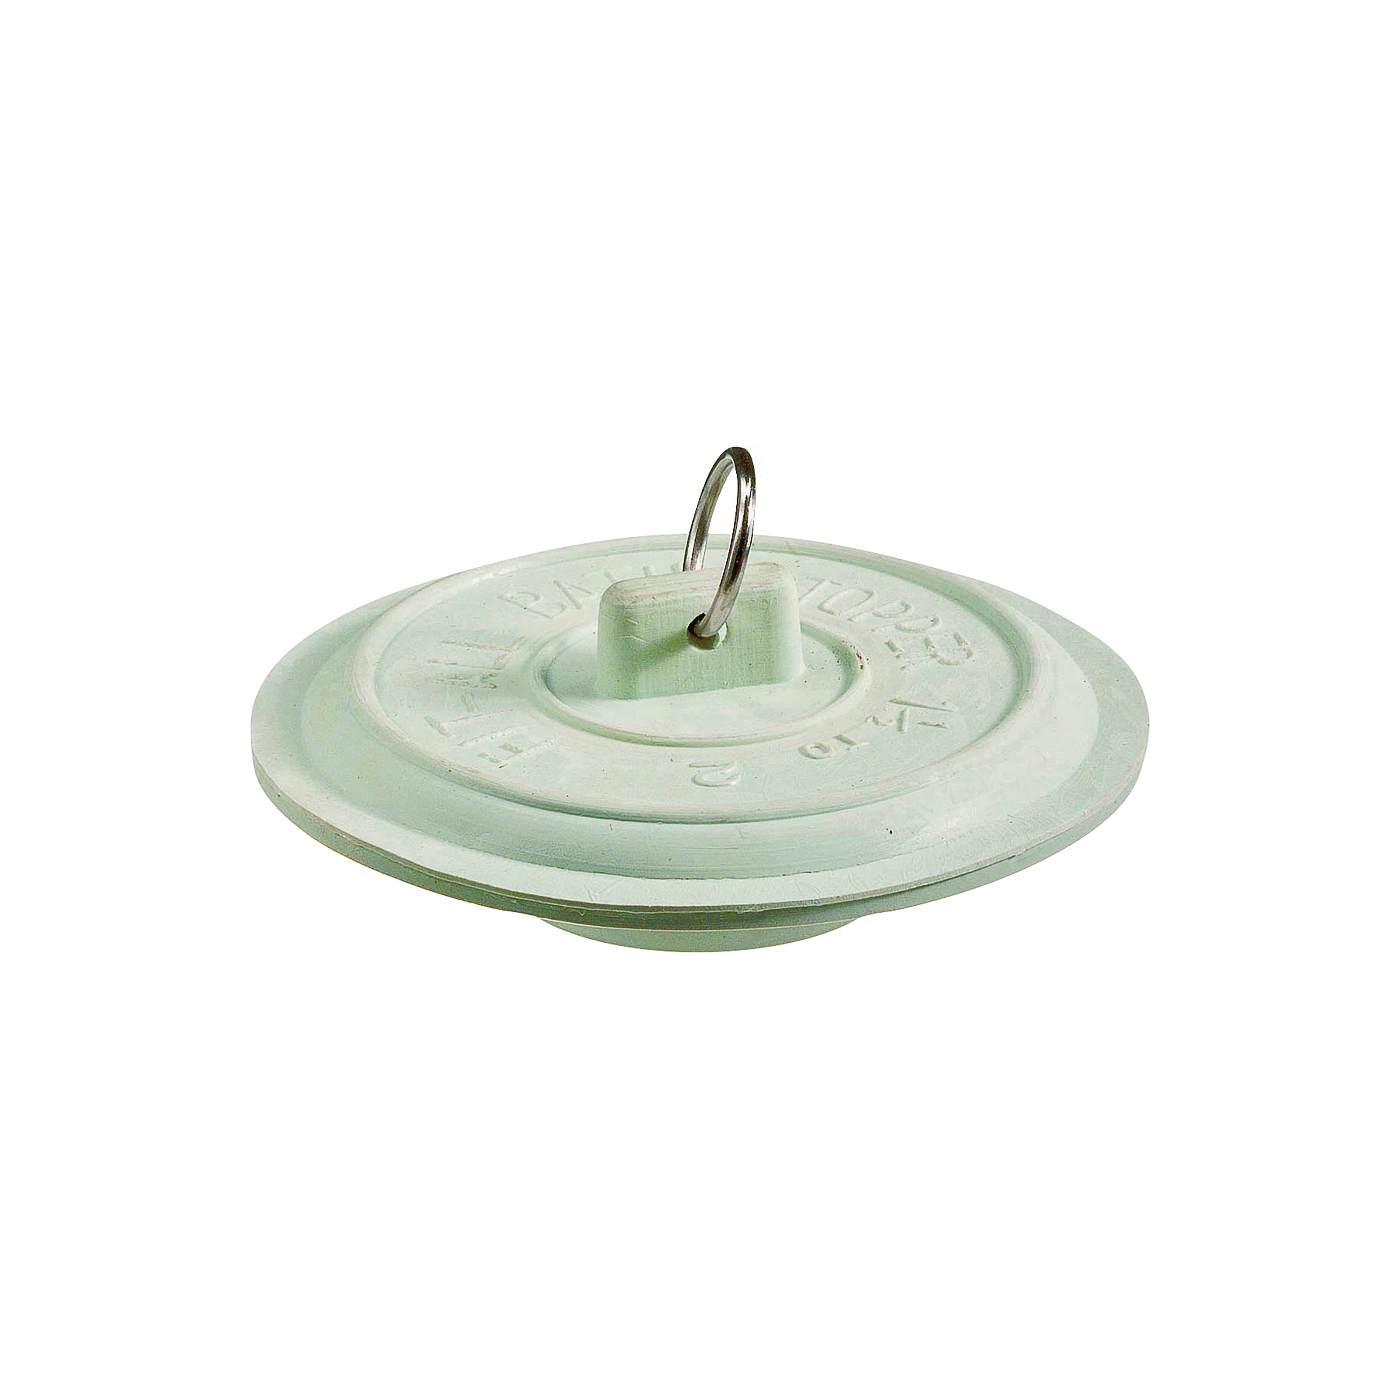 Picture of Plumb Pak PP820-4 Tub Stopper with Ring, Rubber, White, For: Laundry and Bathtubs with 1-1/2 to 2 in Drain